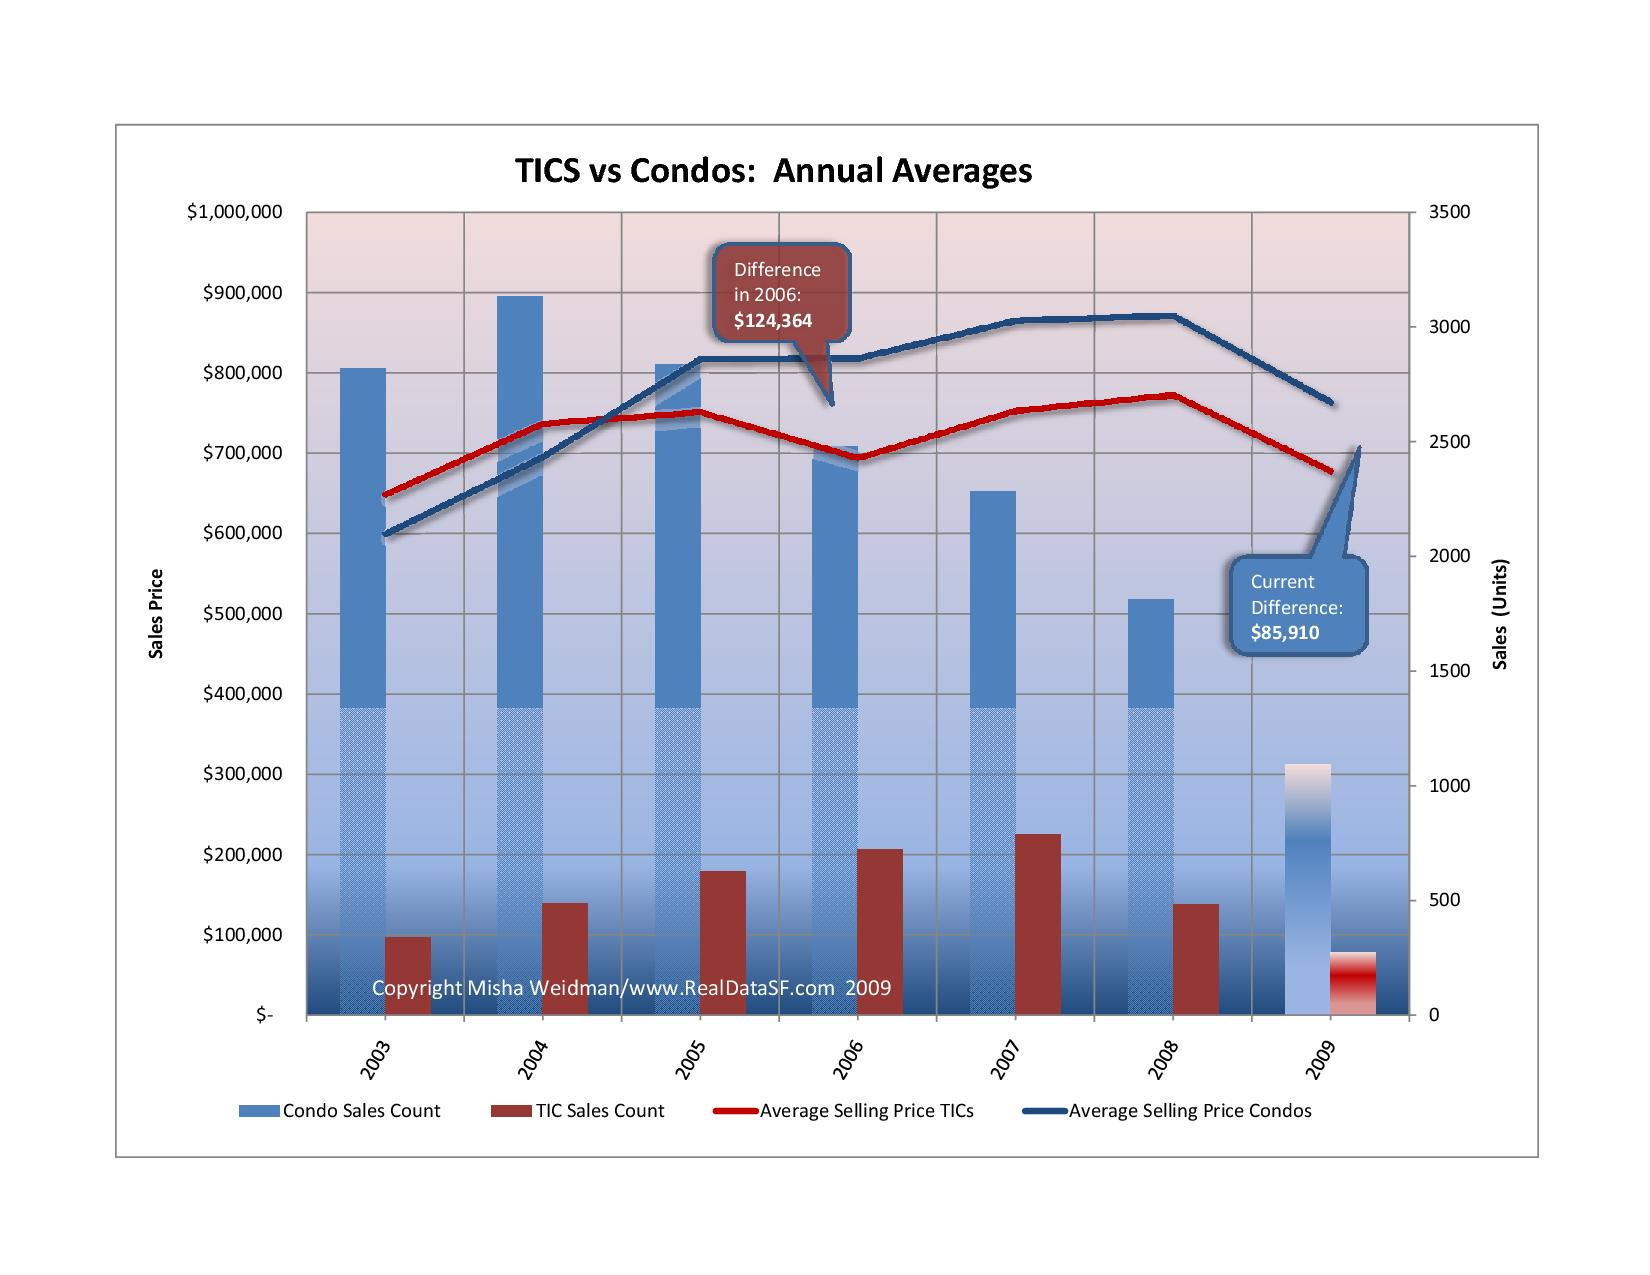 Condos vs. Tics Annual Average Sales Prices